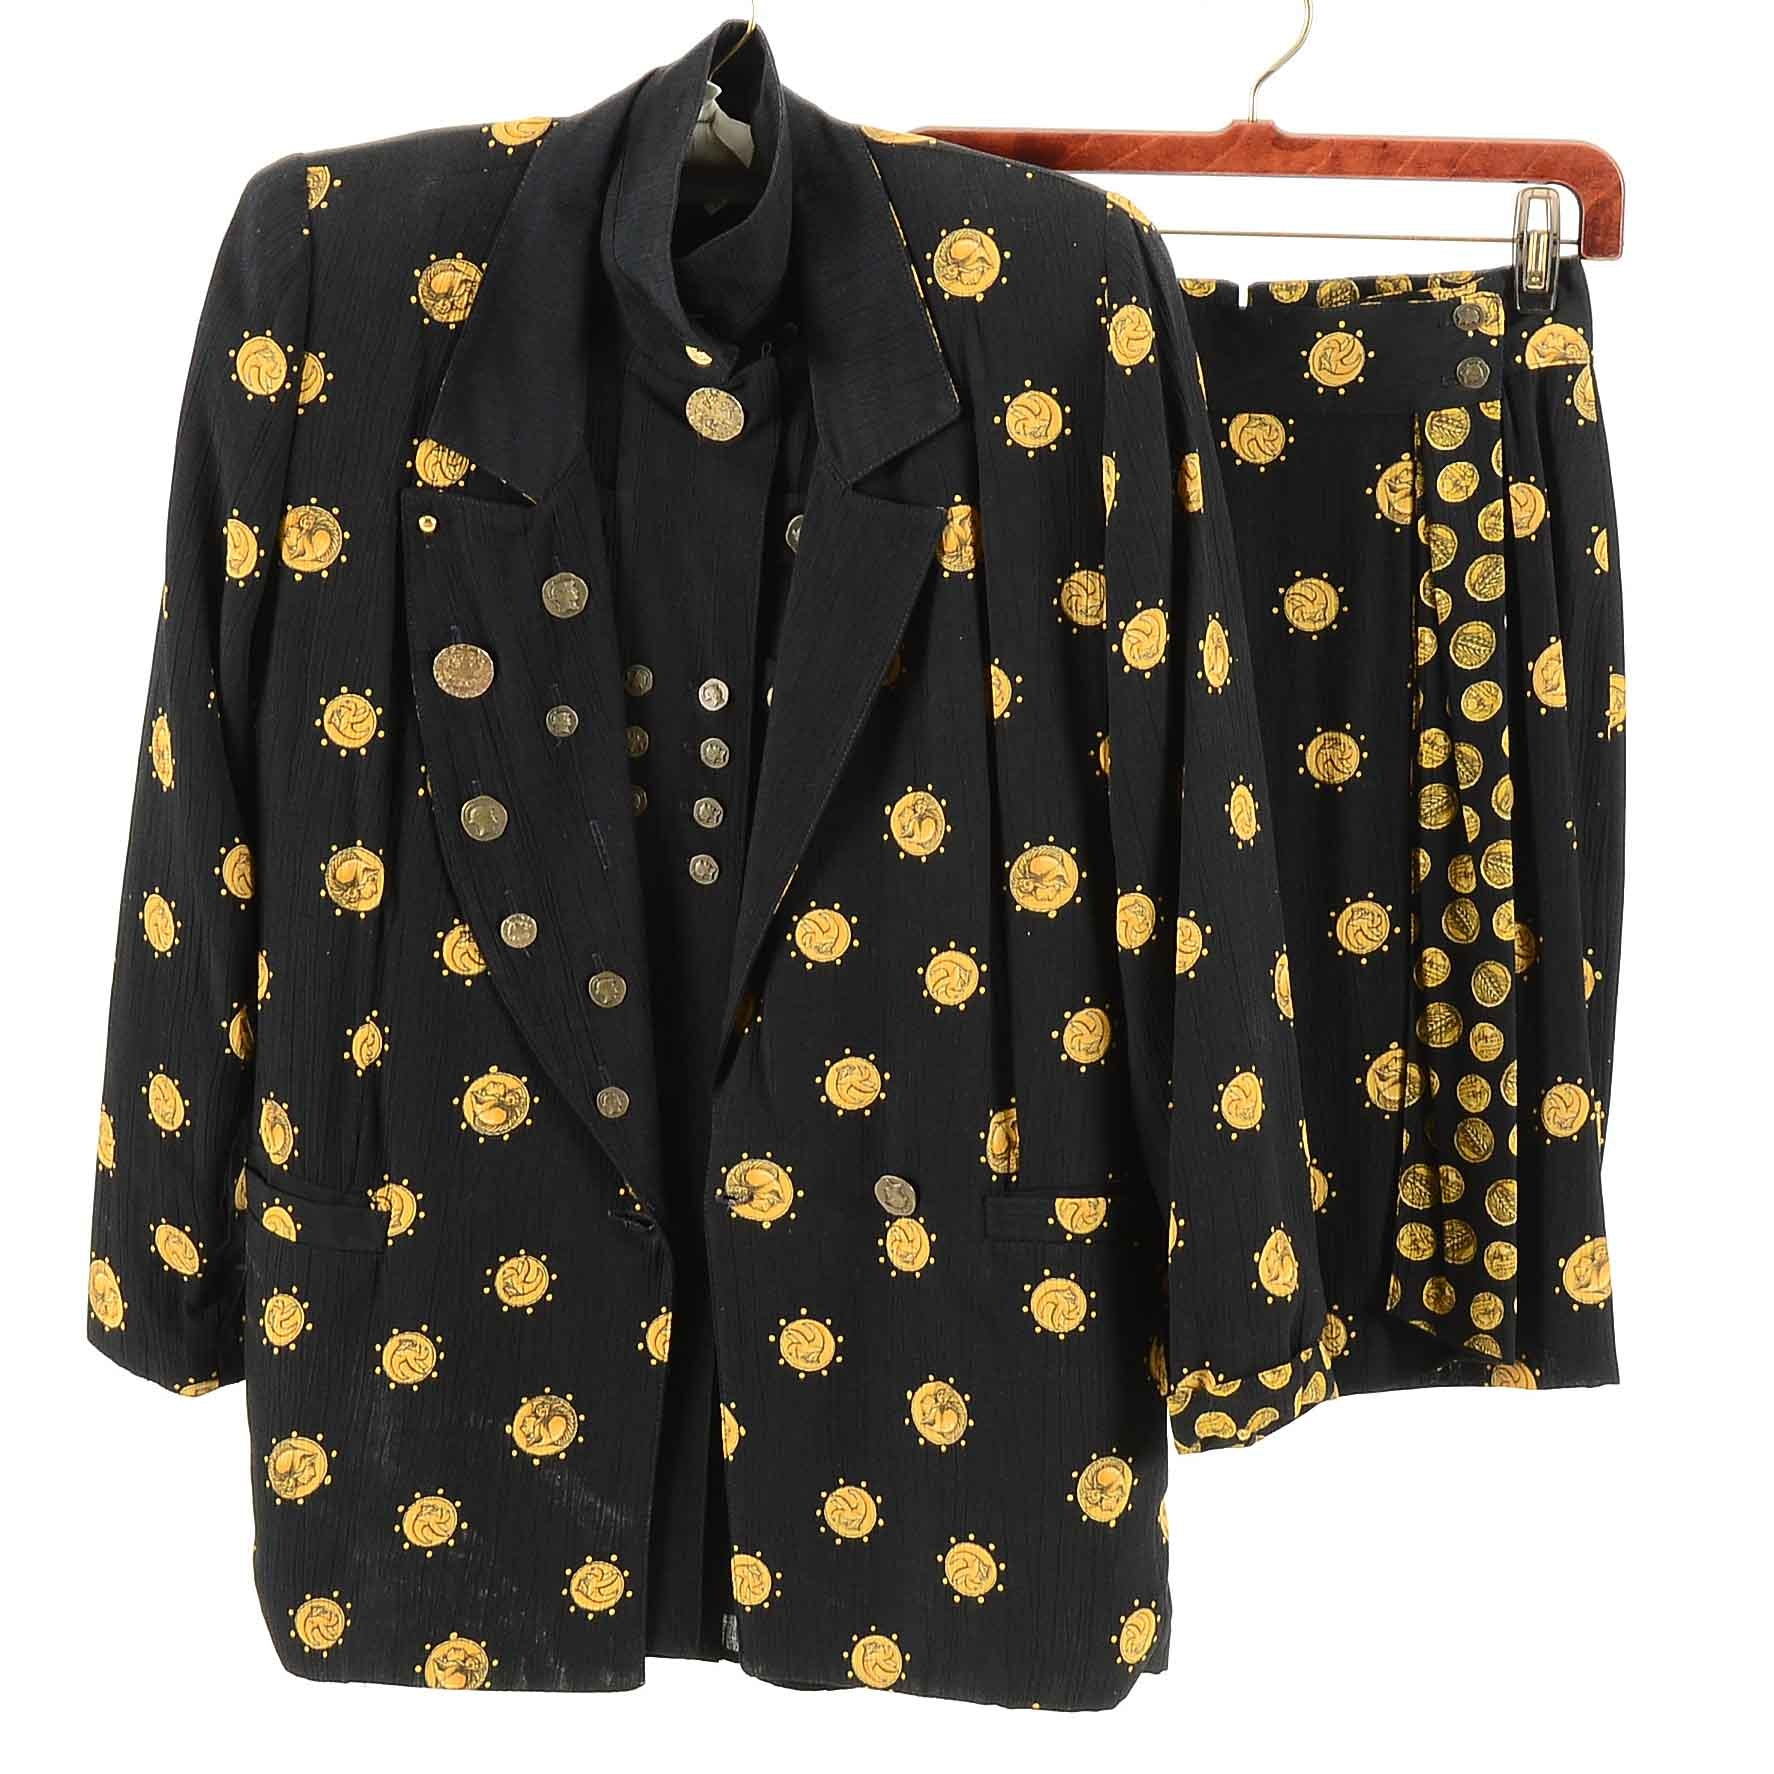 Women's Vintage Coin Skirt Suit from Platinum by Dorothy Schoelen